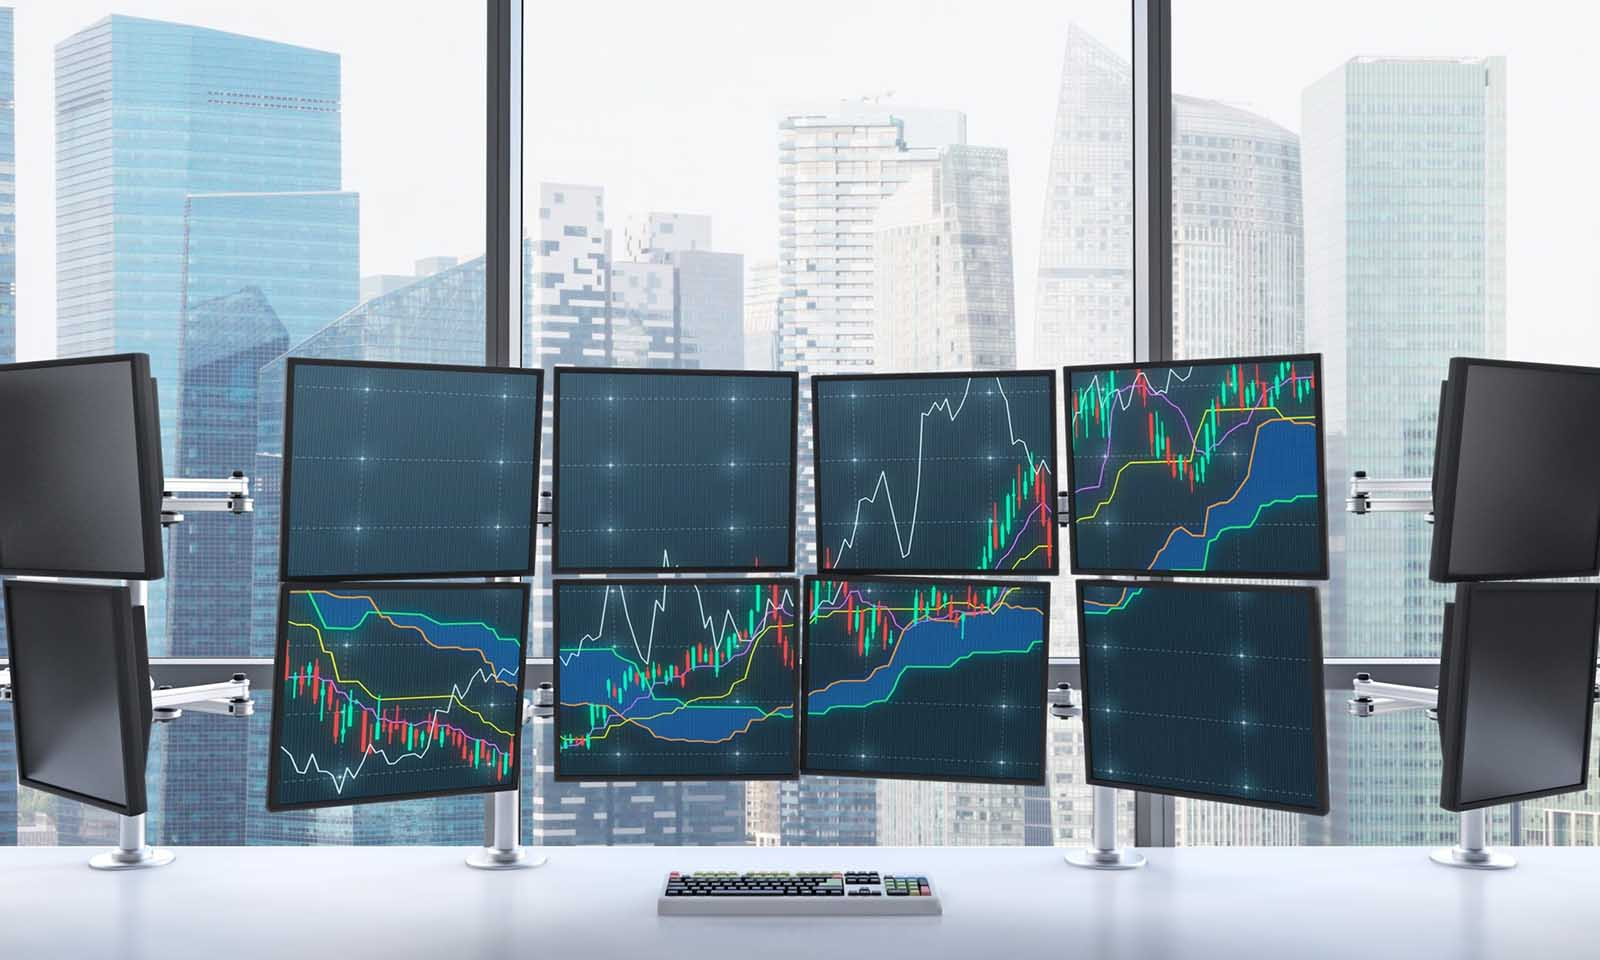 If you're looking for a new investment took, looking into getting a broker fluent in ECN in Forex. It may be the best decision.